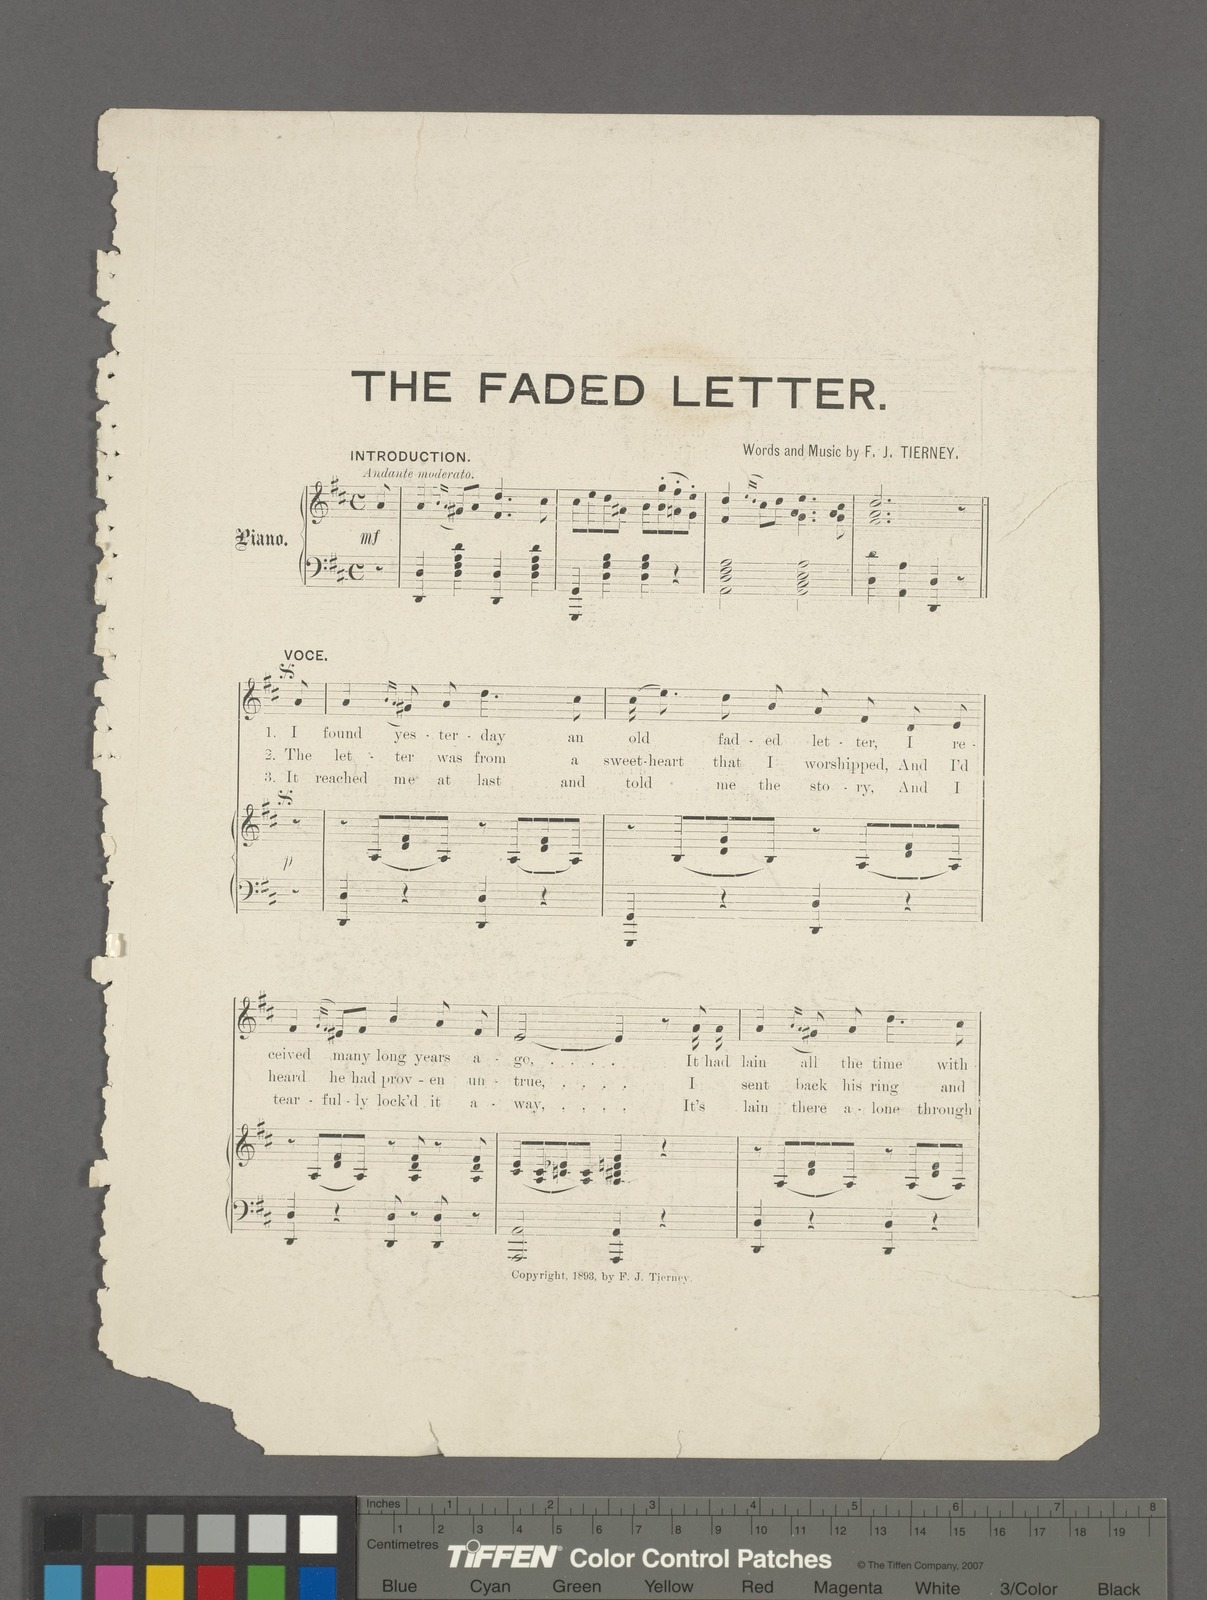 The faded letter